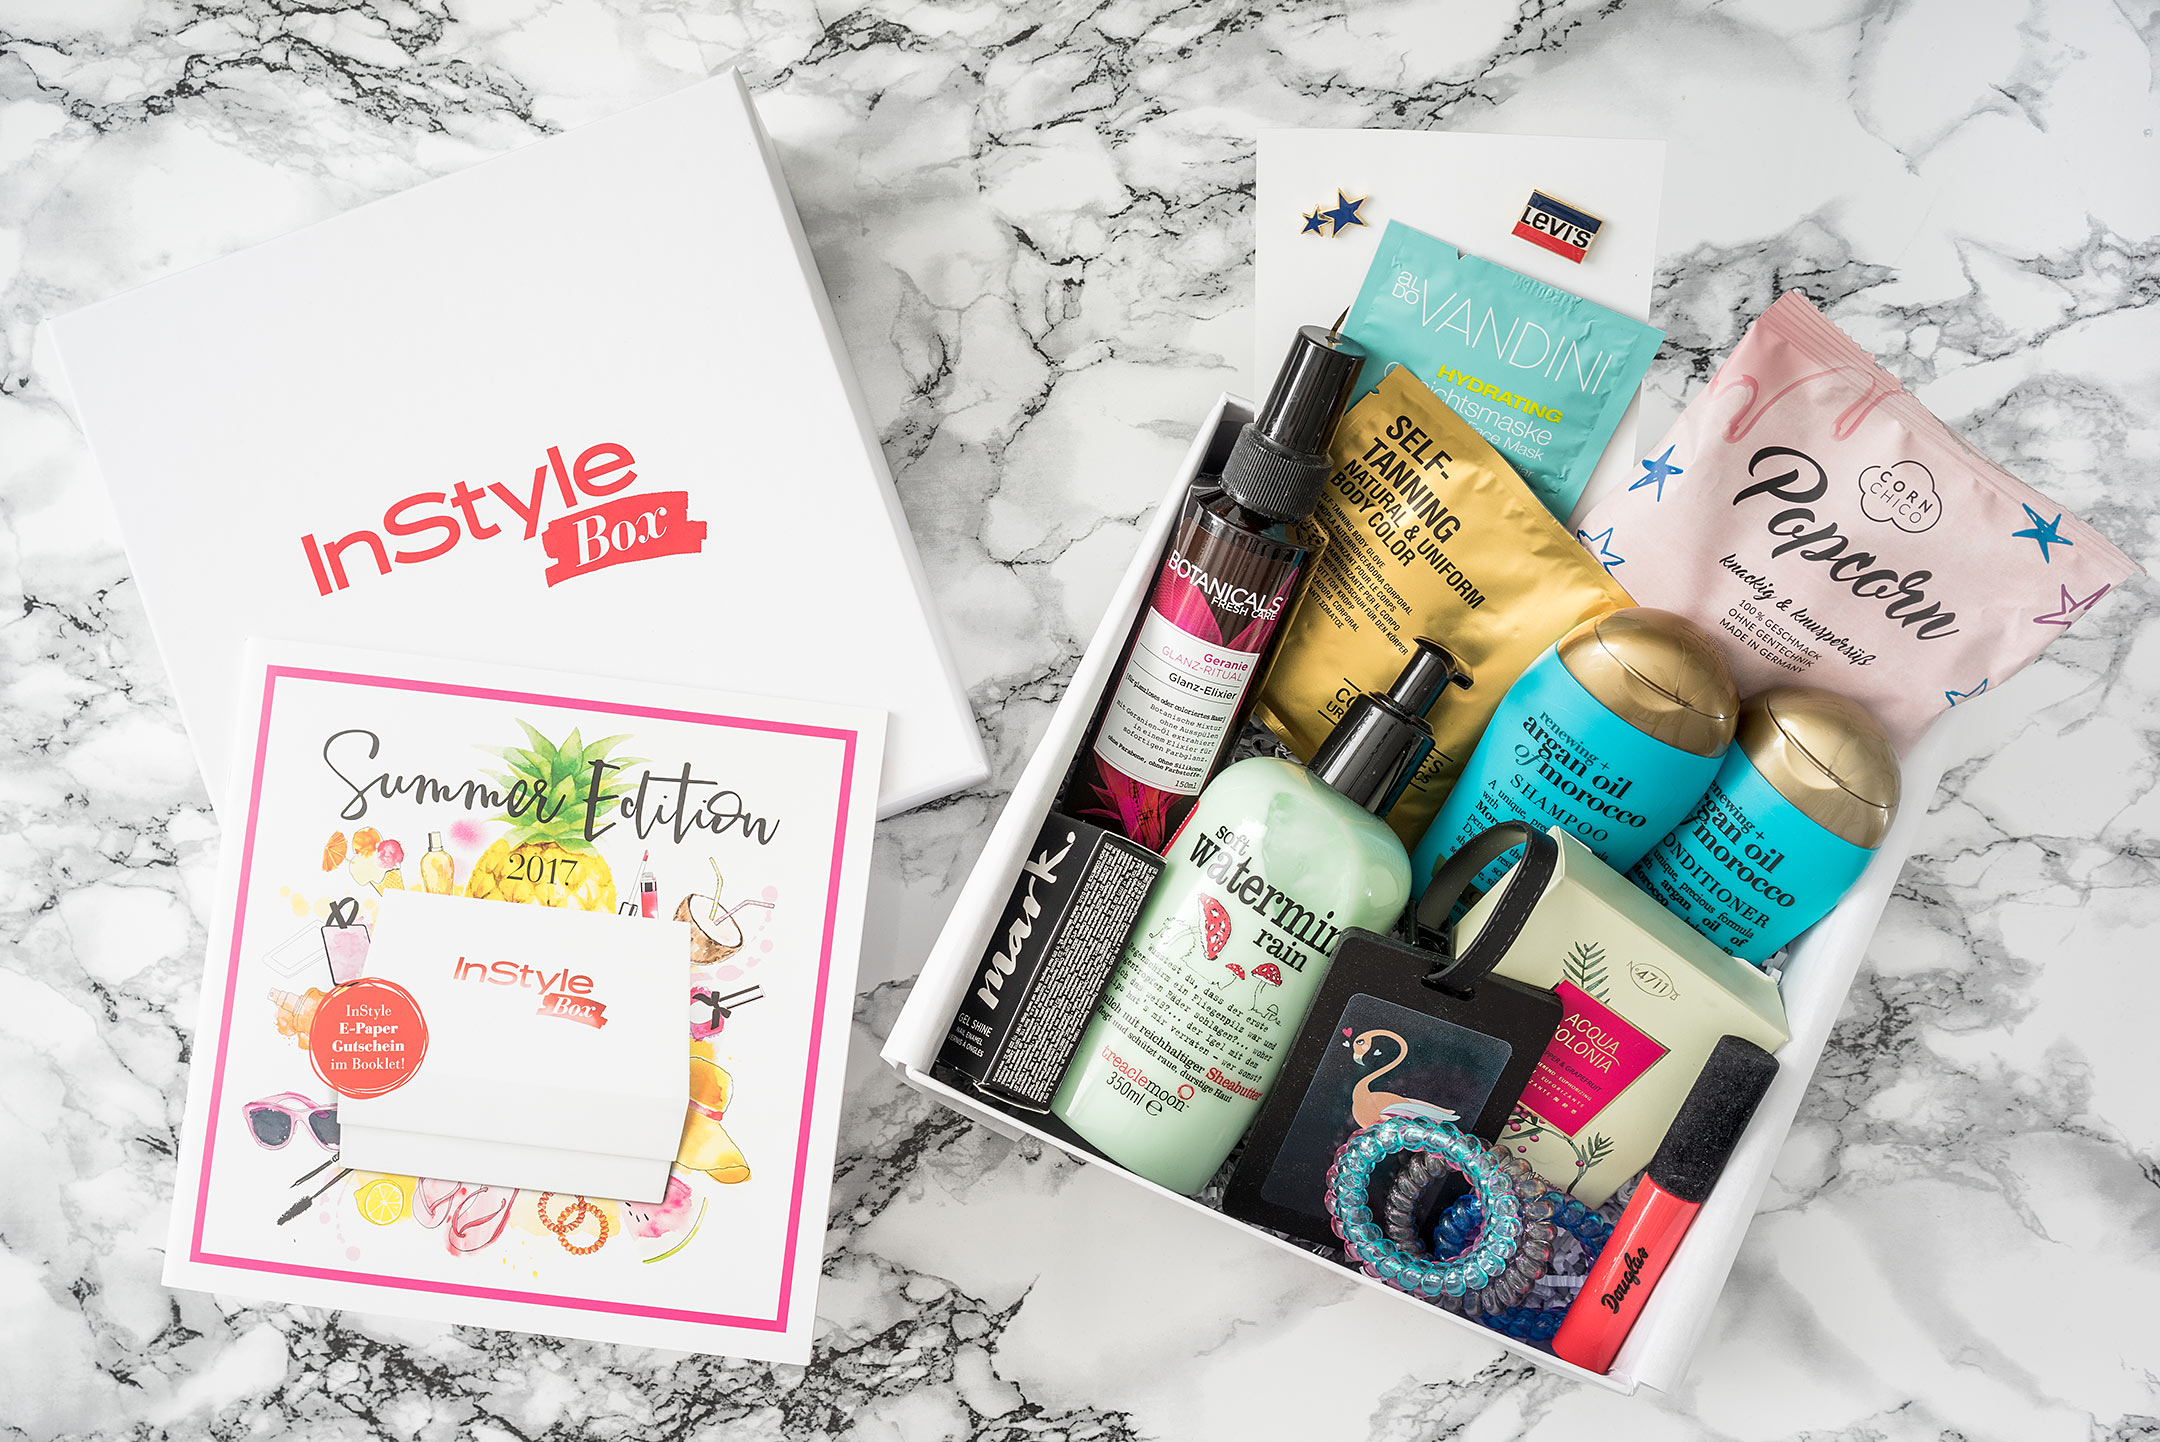 InStyle Box Summer Sommer Edition 2017 Beauty Blog Düsseldorf Sunnyinga